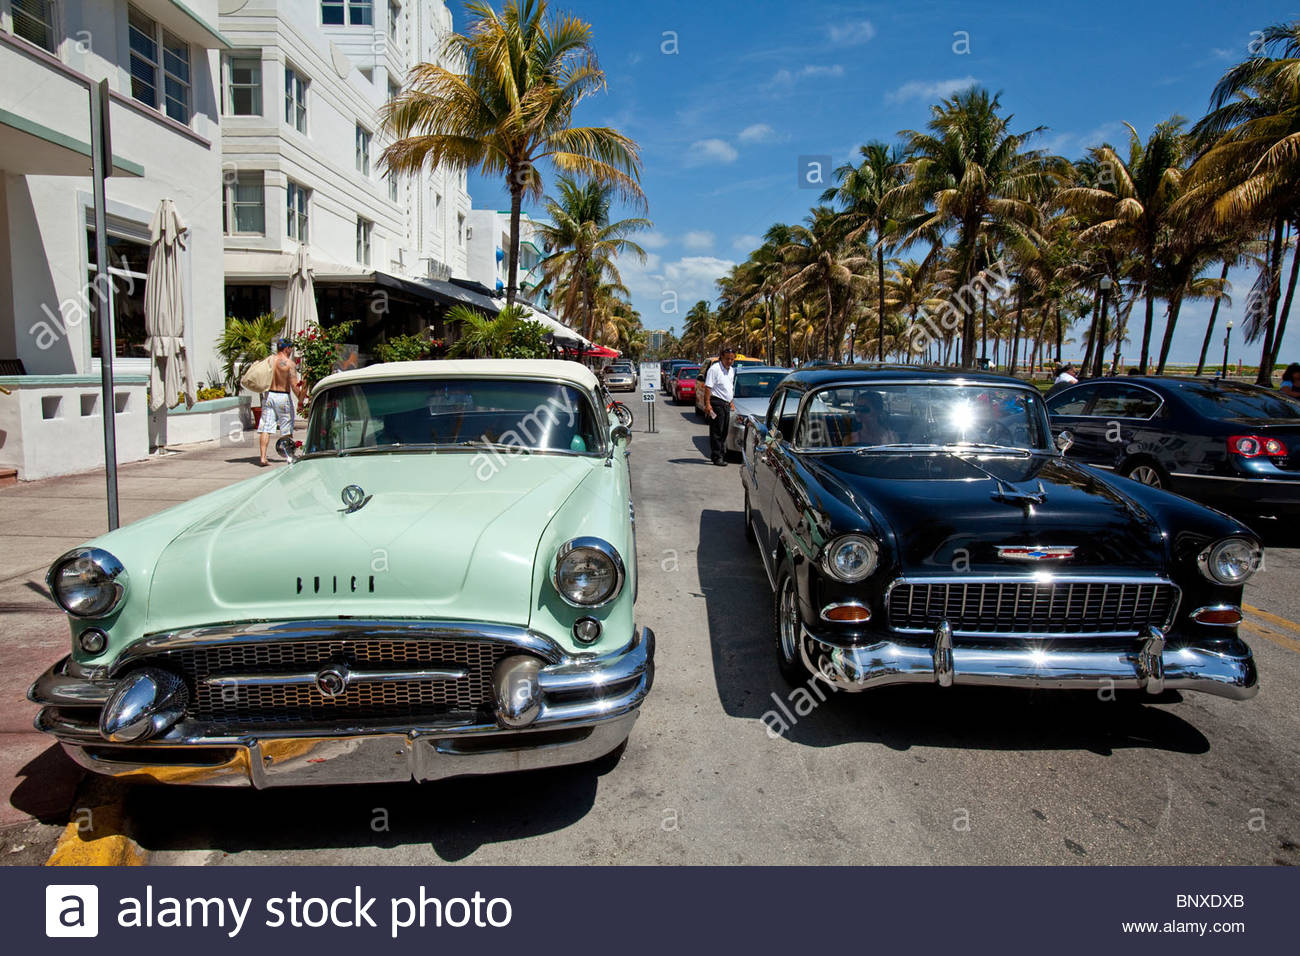 Classic American Cars, Ocean Drive, South Beach, Miami, Florida, Usa ...